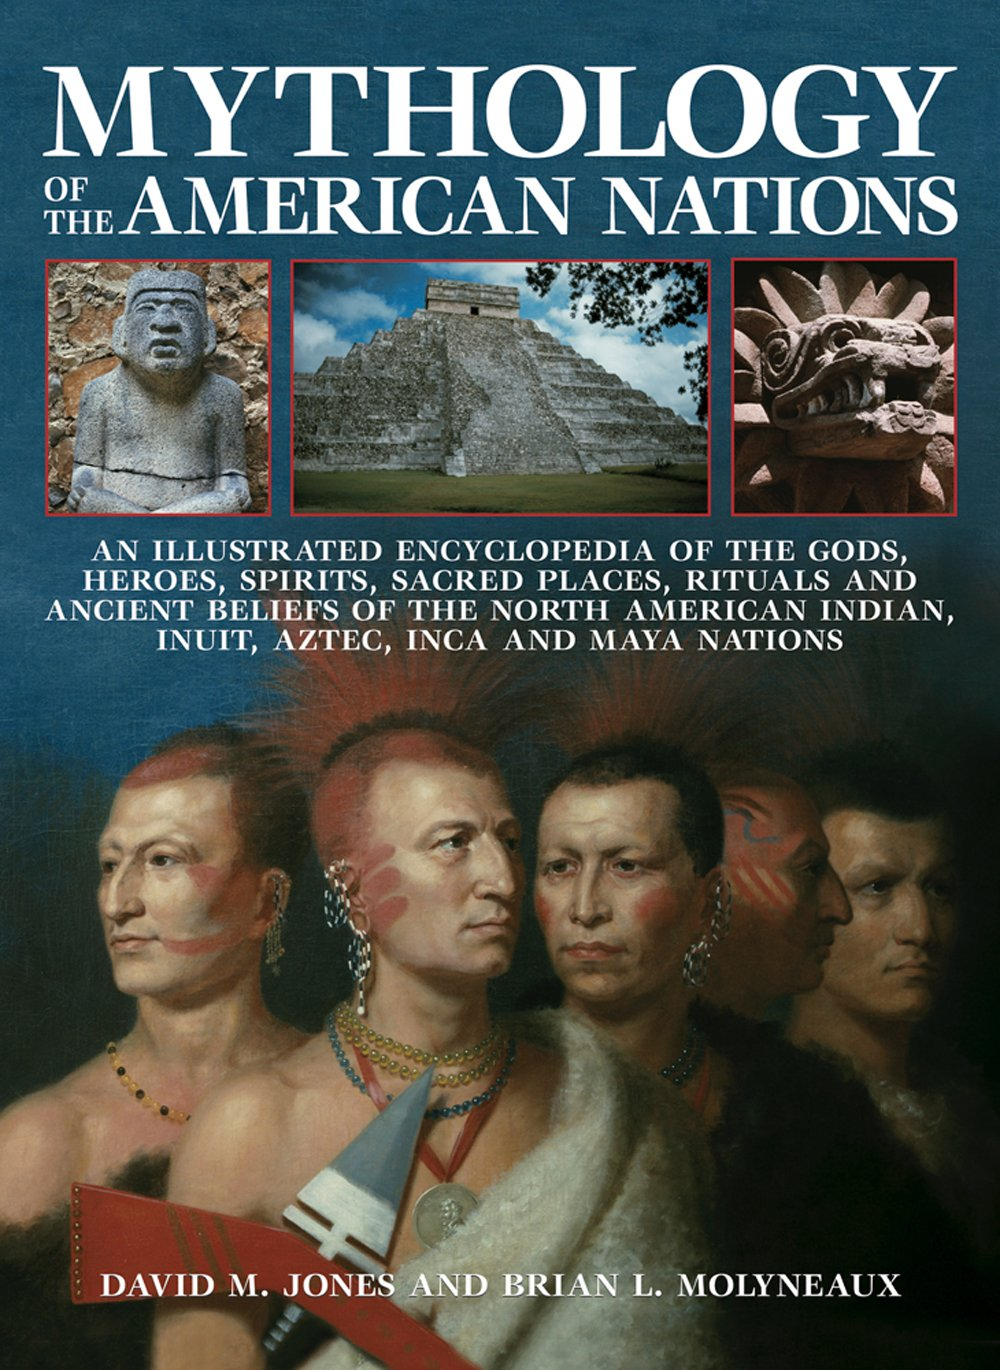 Mythology of the American Nations: An Illustrated Encyclopedia Of The Gods, Heroes, Spirits, Sacred Places, Rituals And Ancient Beliefs Of The North Indian, Inuit, Aztec, Inca And Maya Nations